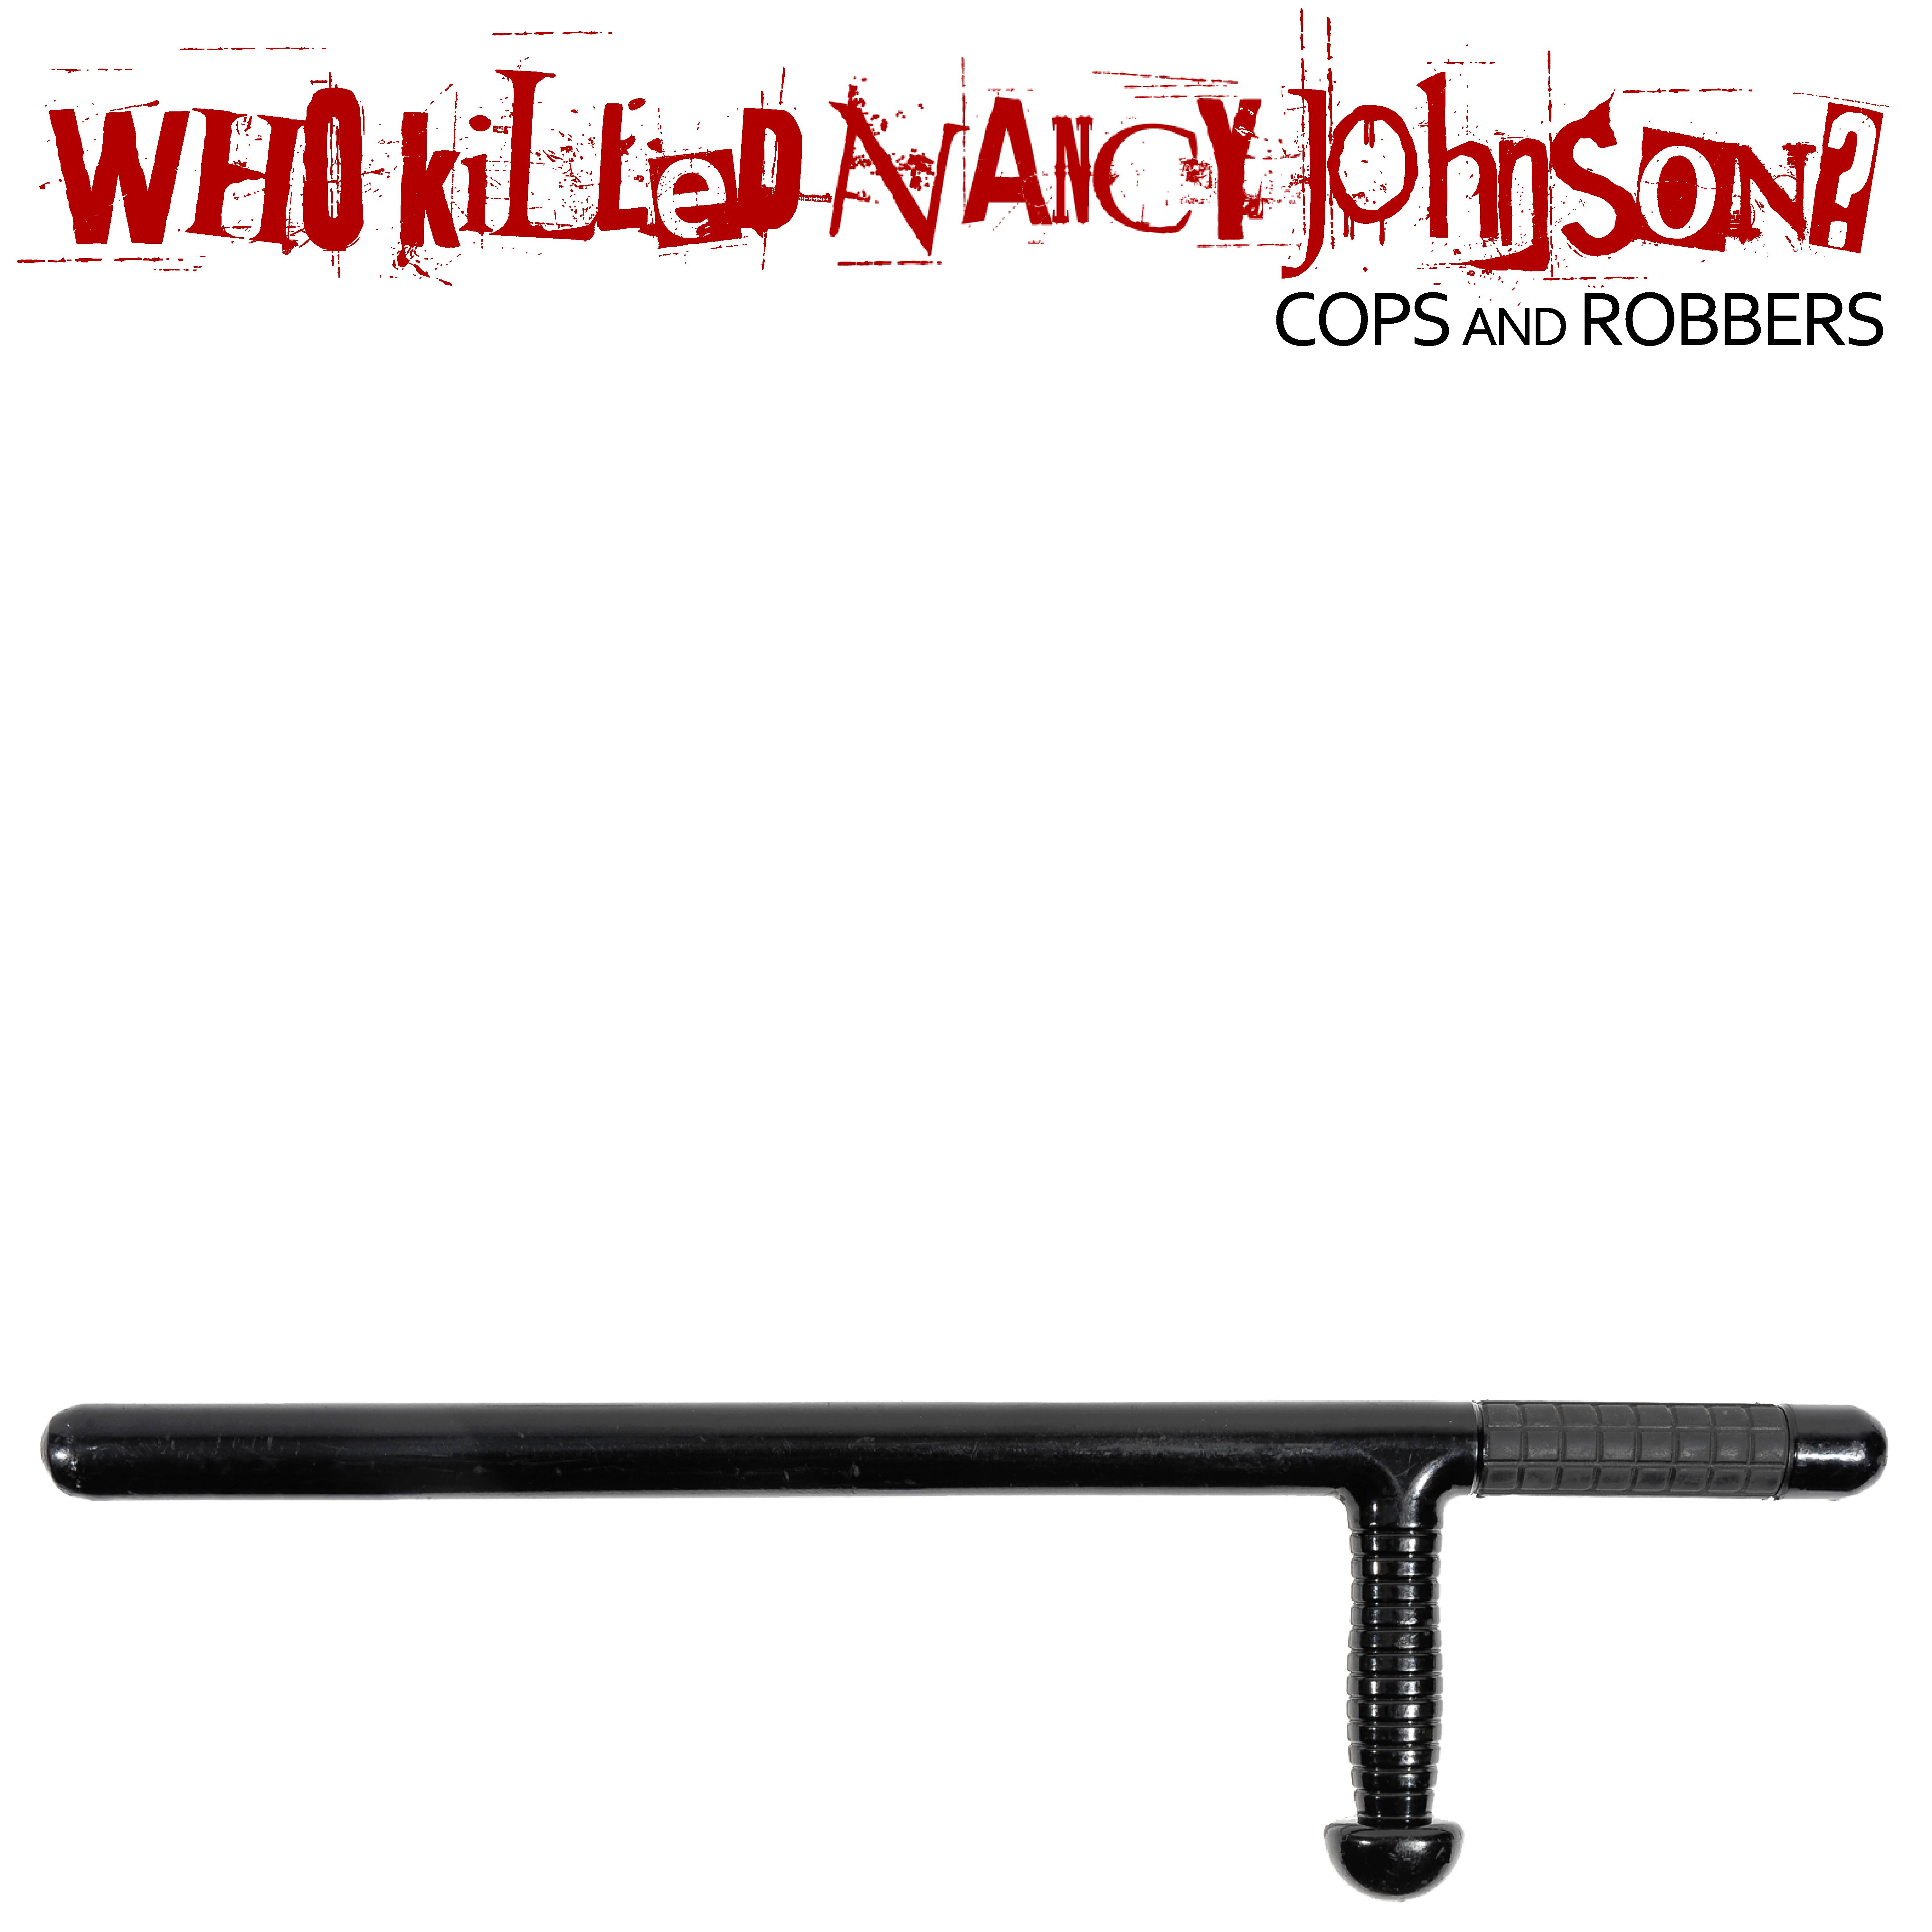 Cops and Robbers EP on CD - Who Killed Nancy Johnson?